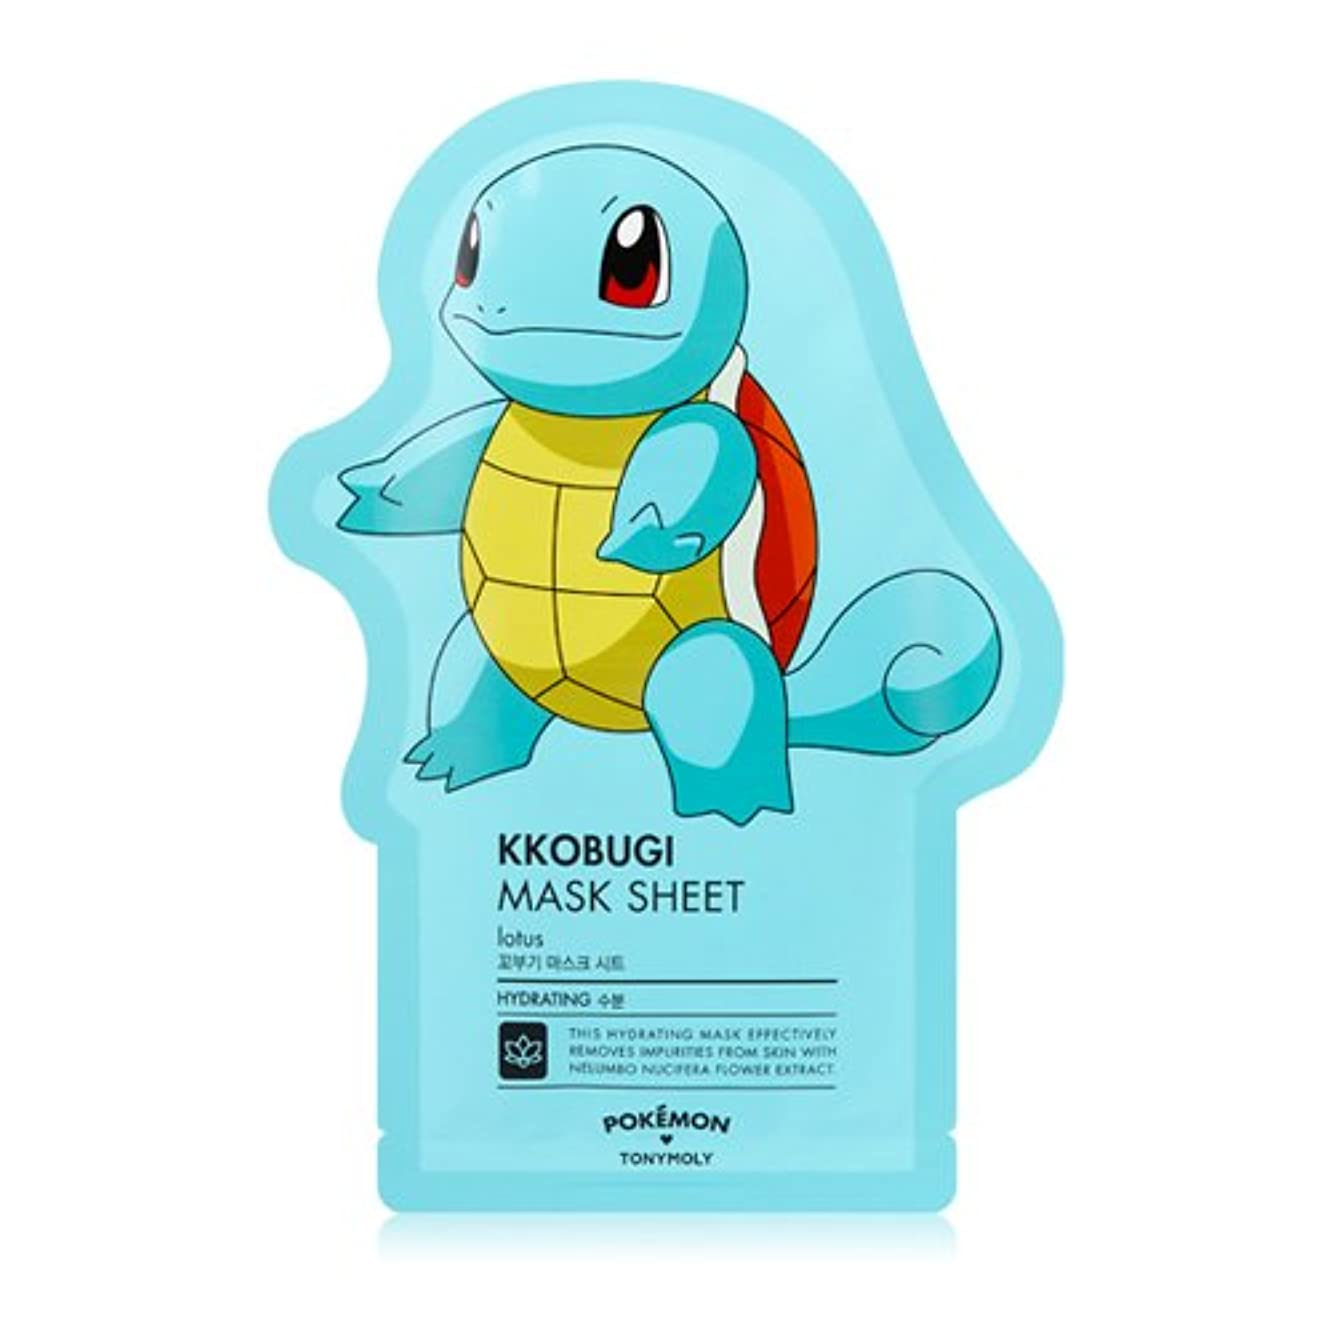 解く逮捕争うTONYMOLY x Pokemon Squirtle/Kkobugi Mask Sheet (並行輸入品)